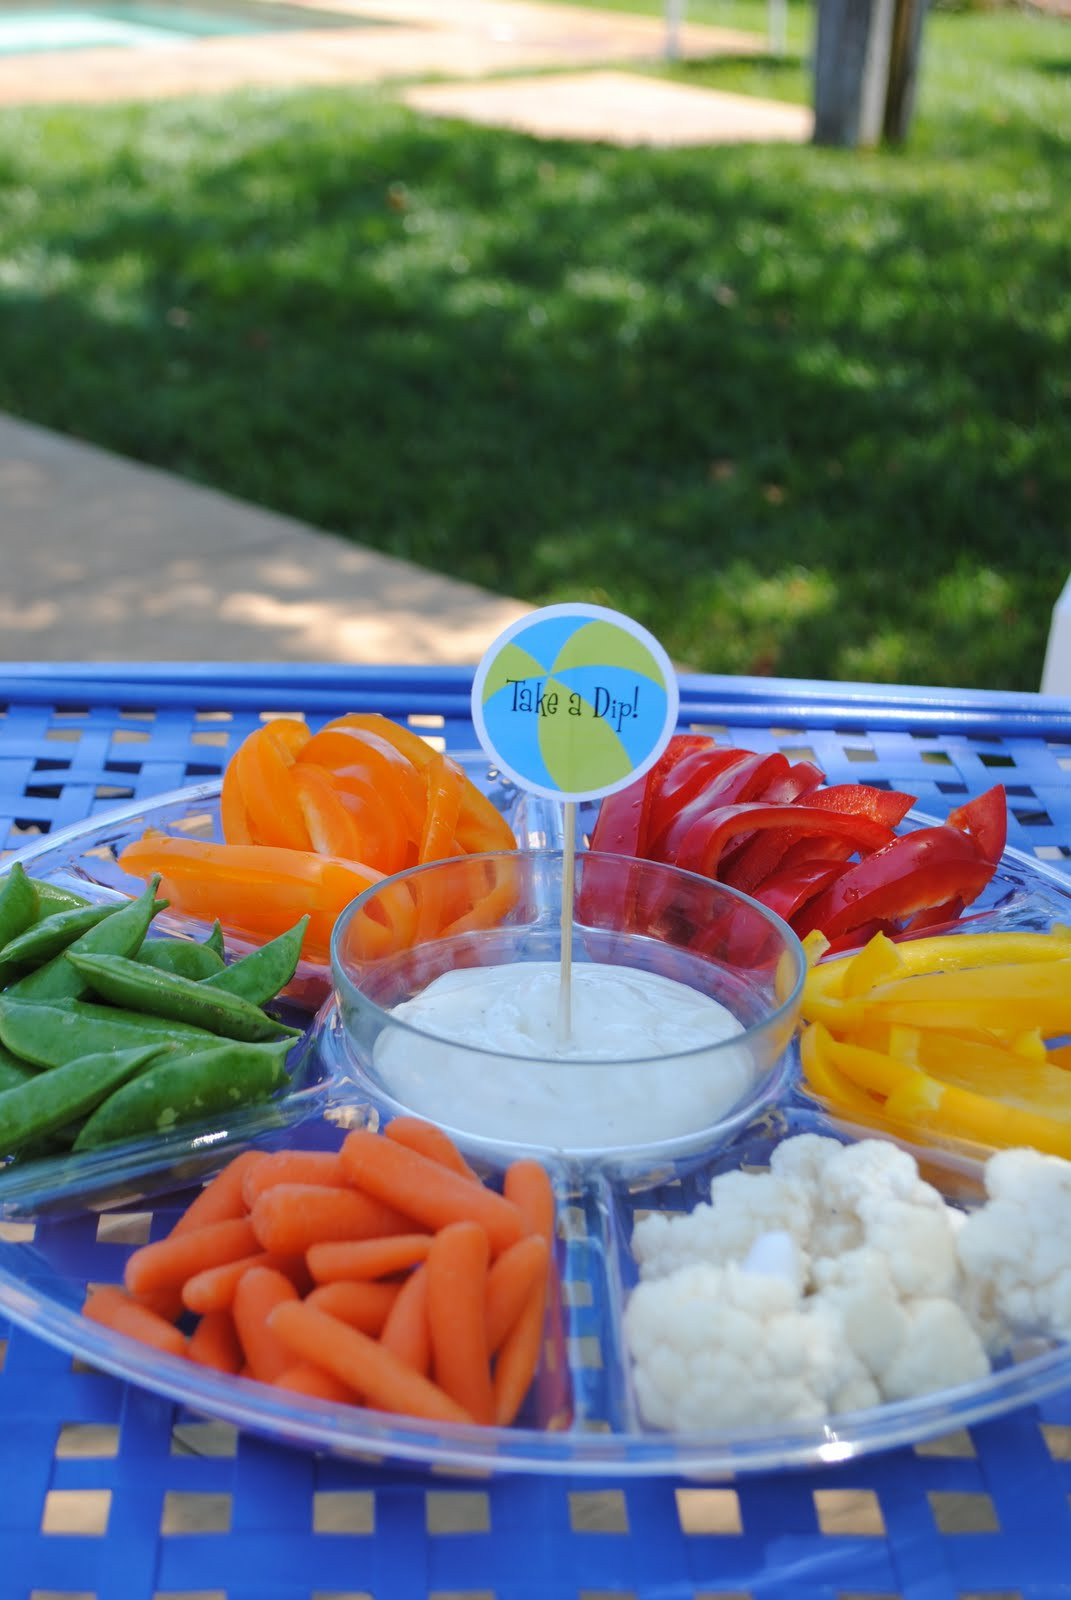 Pool Party Menu Ideas  Jac o lyn Murphy Pool Party Dips Drinks and Swim Snacks